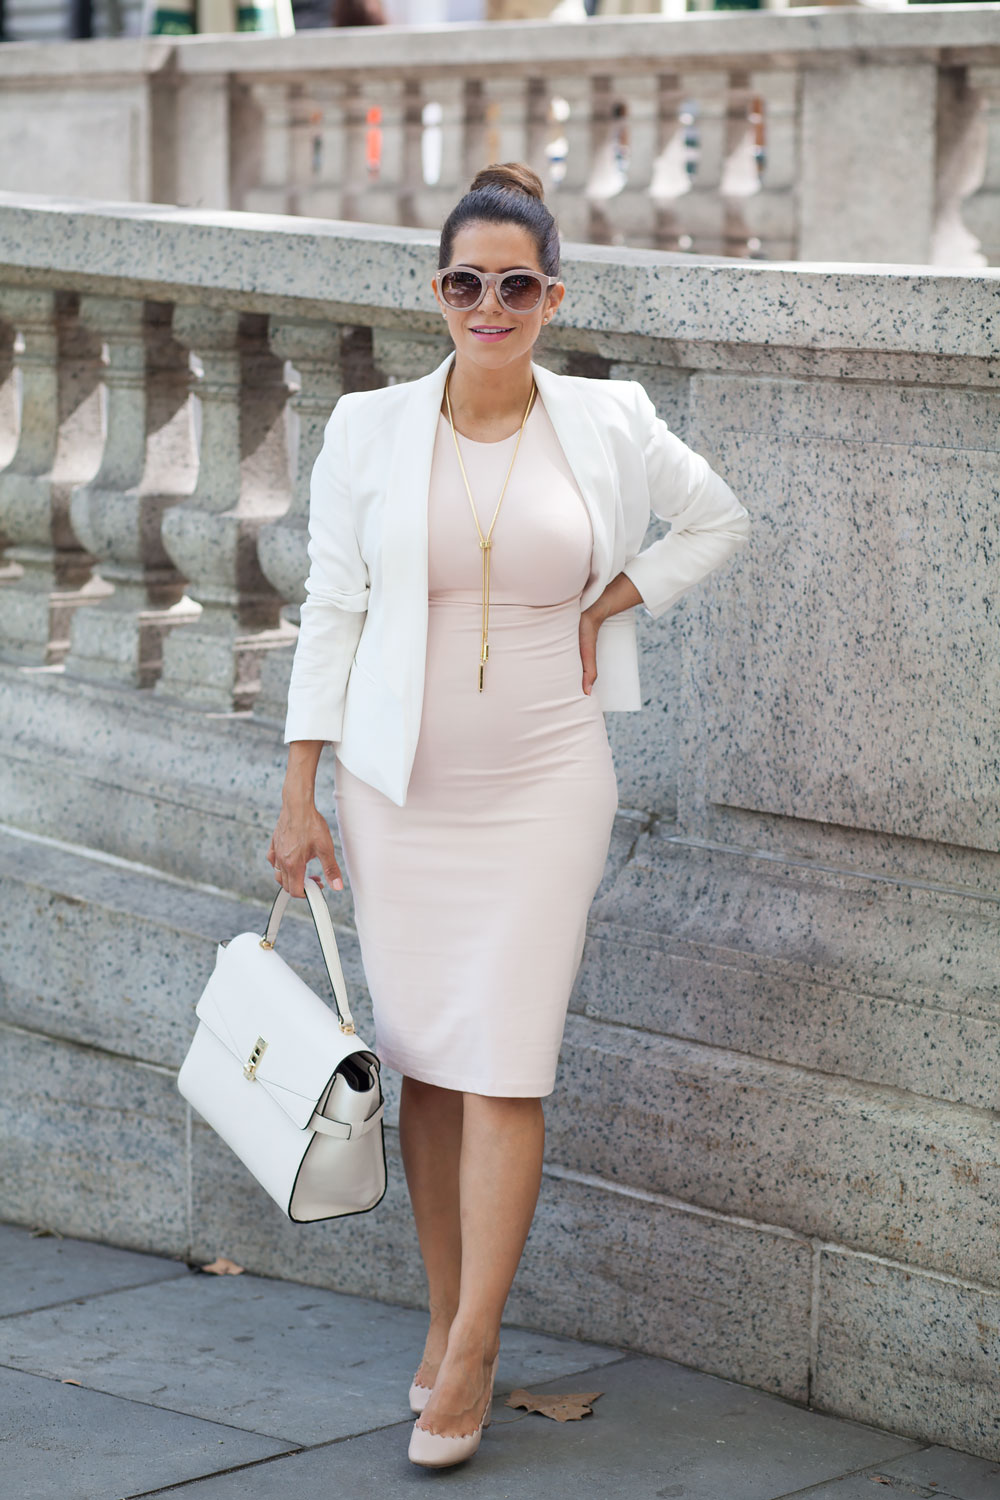 Pink dress white blazer henri bendel tote pink chloe heels what to wear to work workwear maternity style corporate catwalk nyc new york fashion